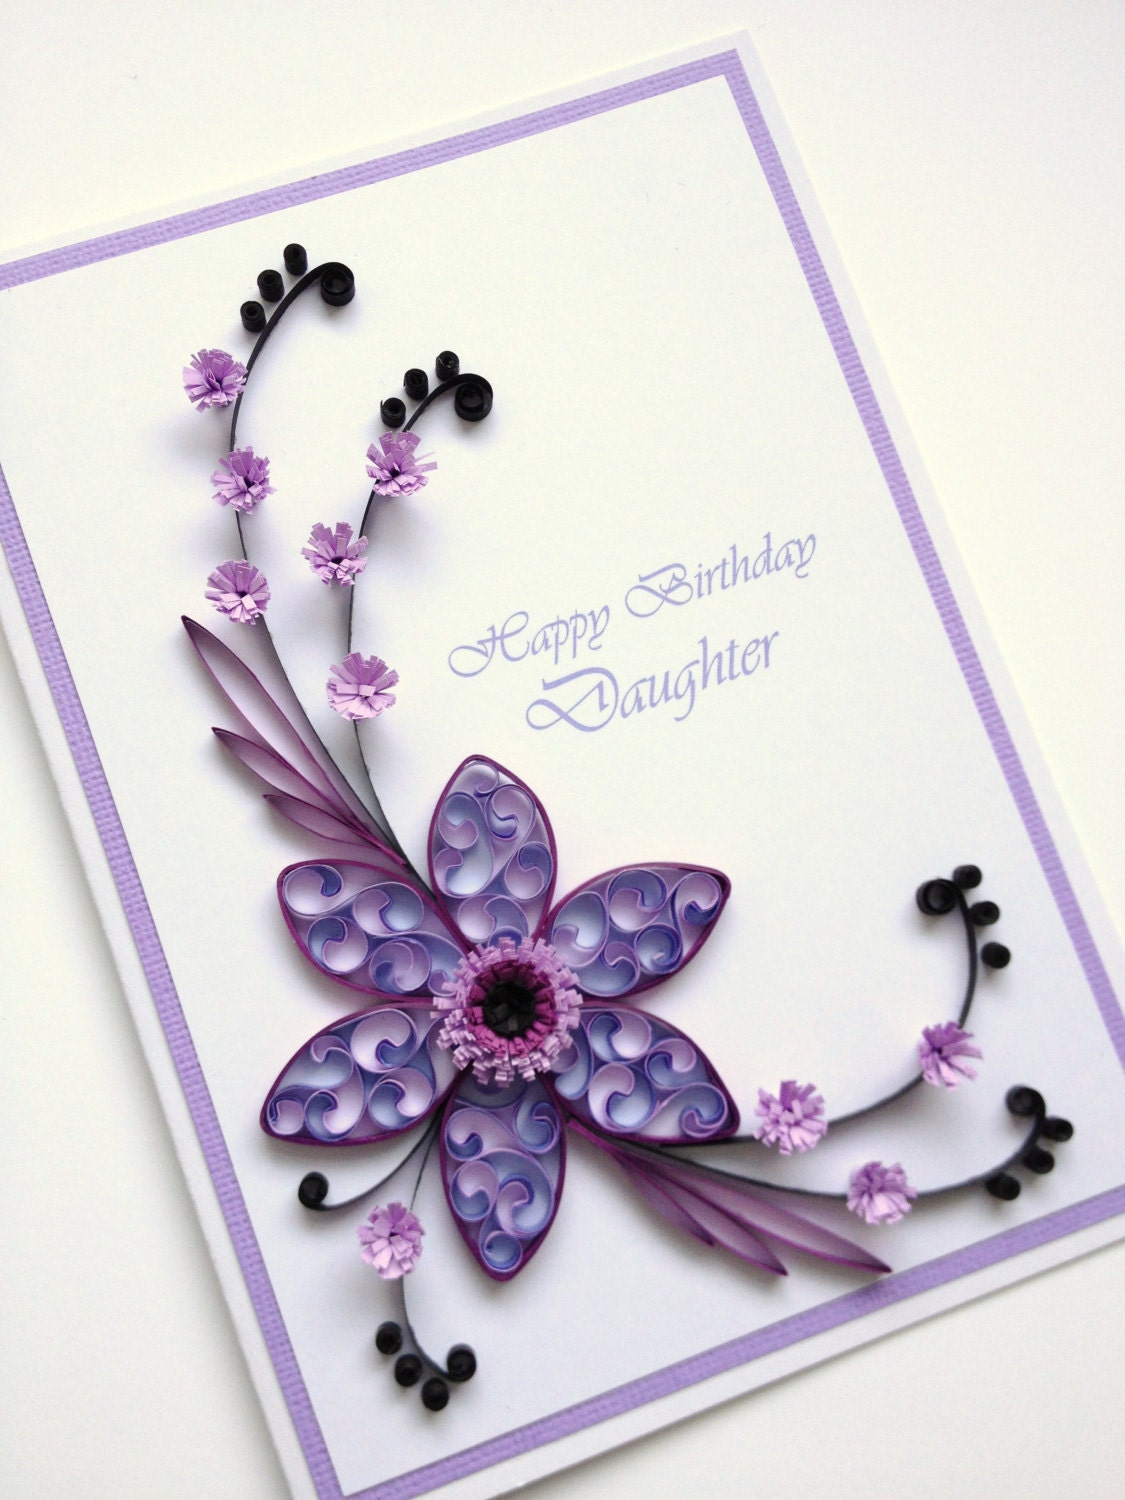 Paper Quilling Happy Birthday Daughter Card Quilled By Joscinta